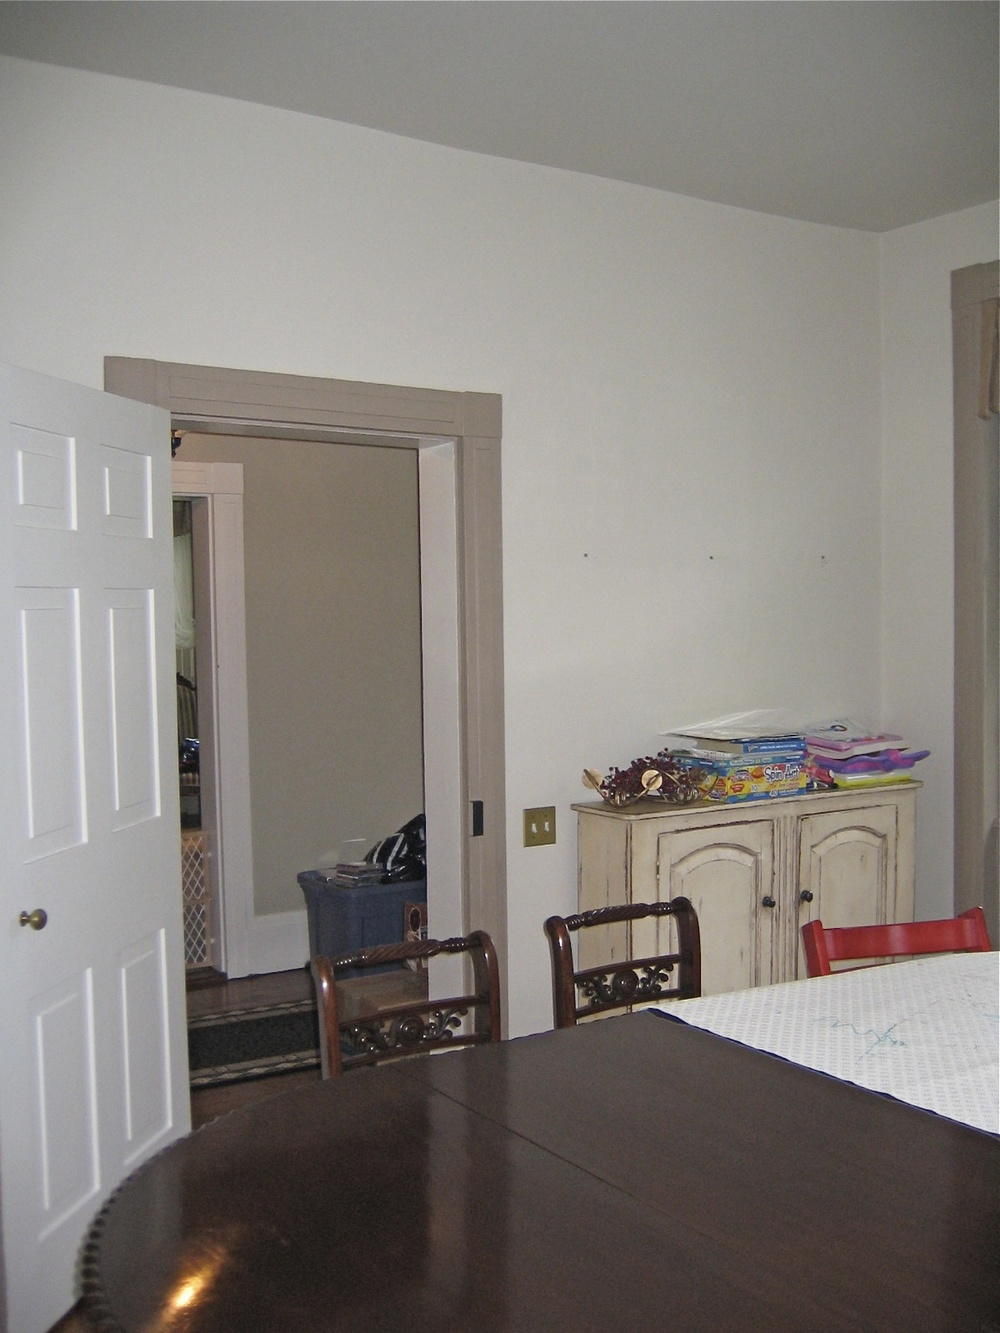 09 Dining Room Before.jpg